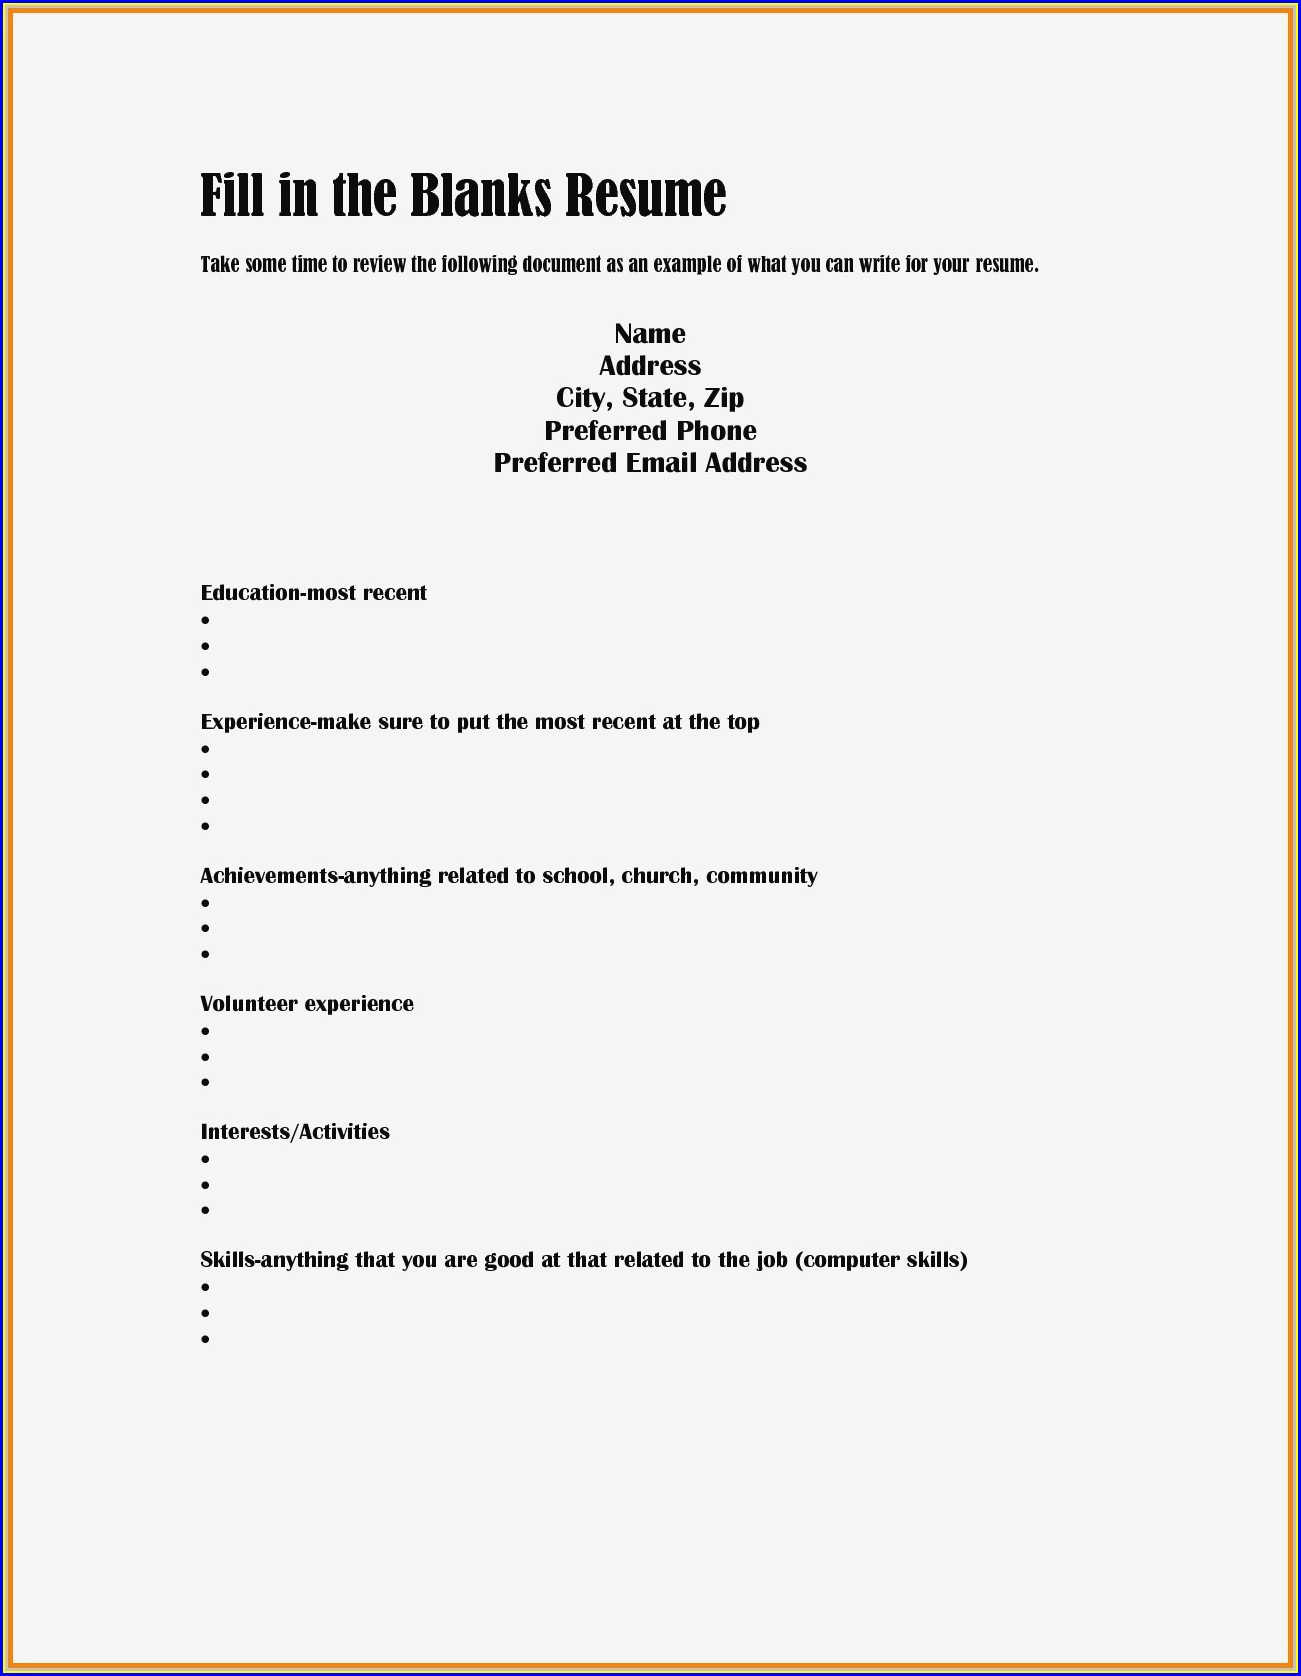 Basic Resume Template Fill In The Blank